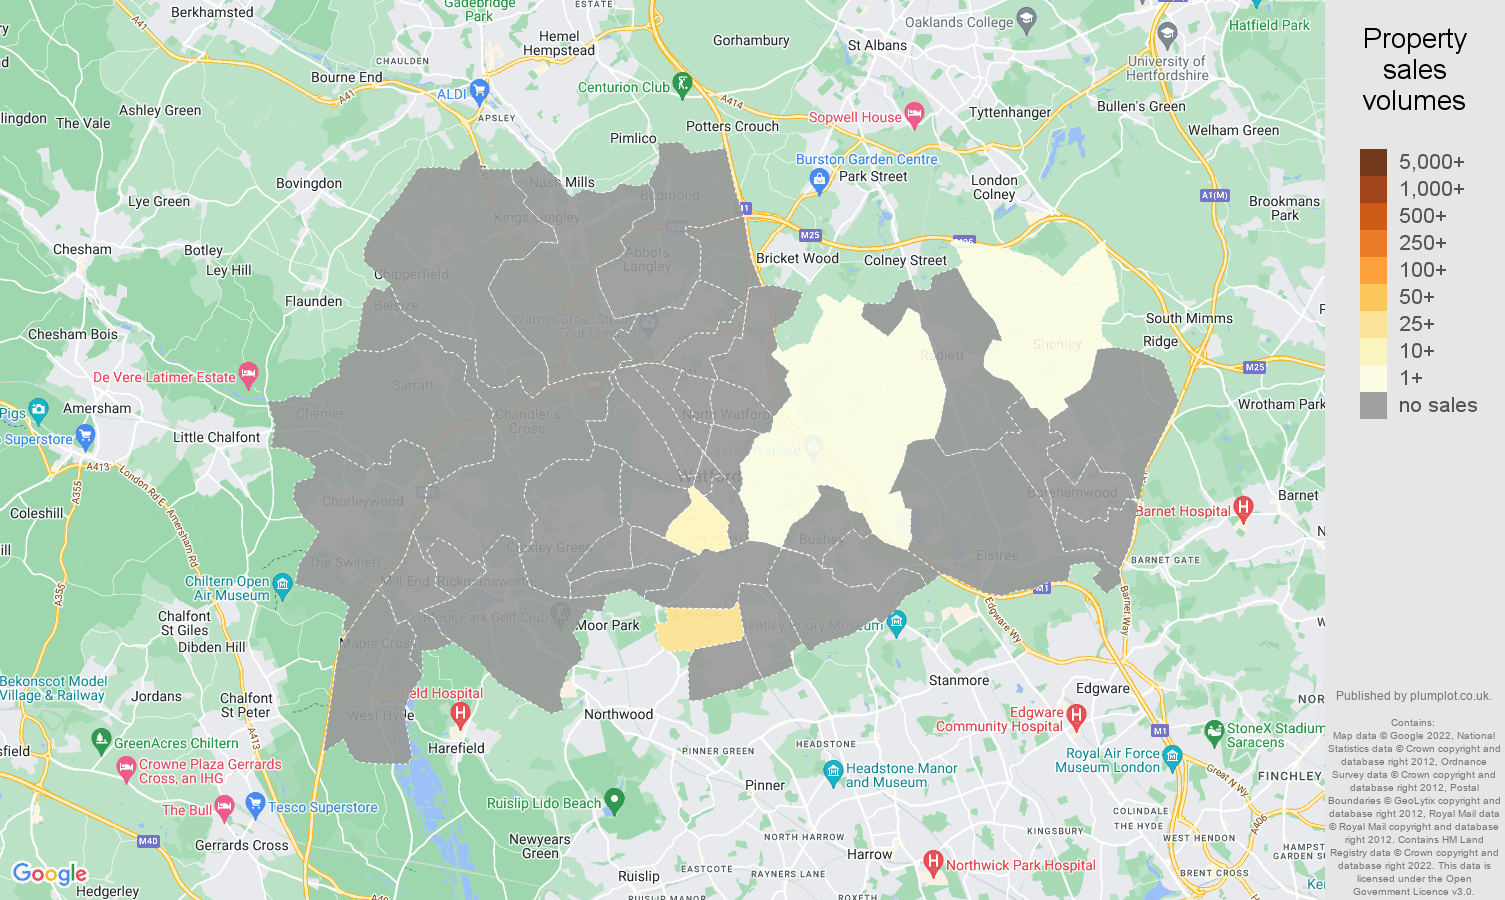 Watford map of sales of new properties